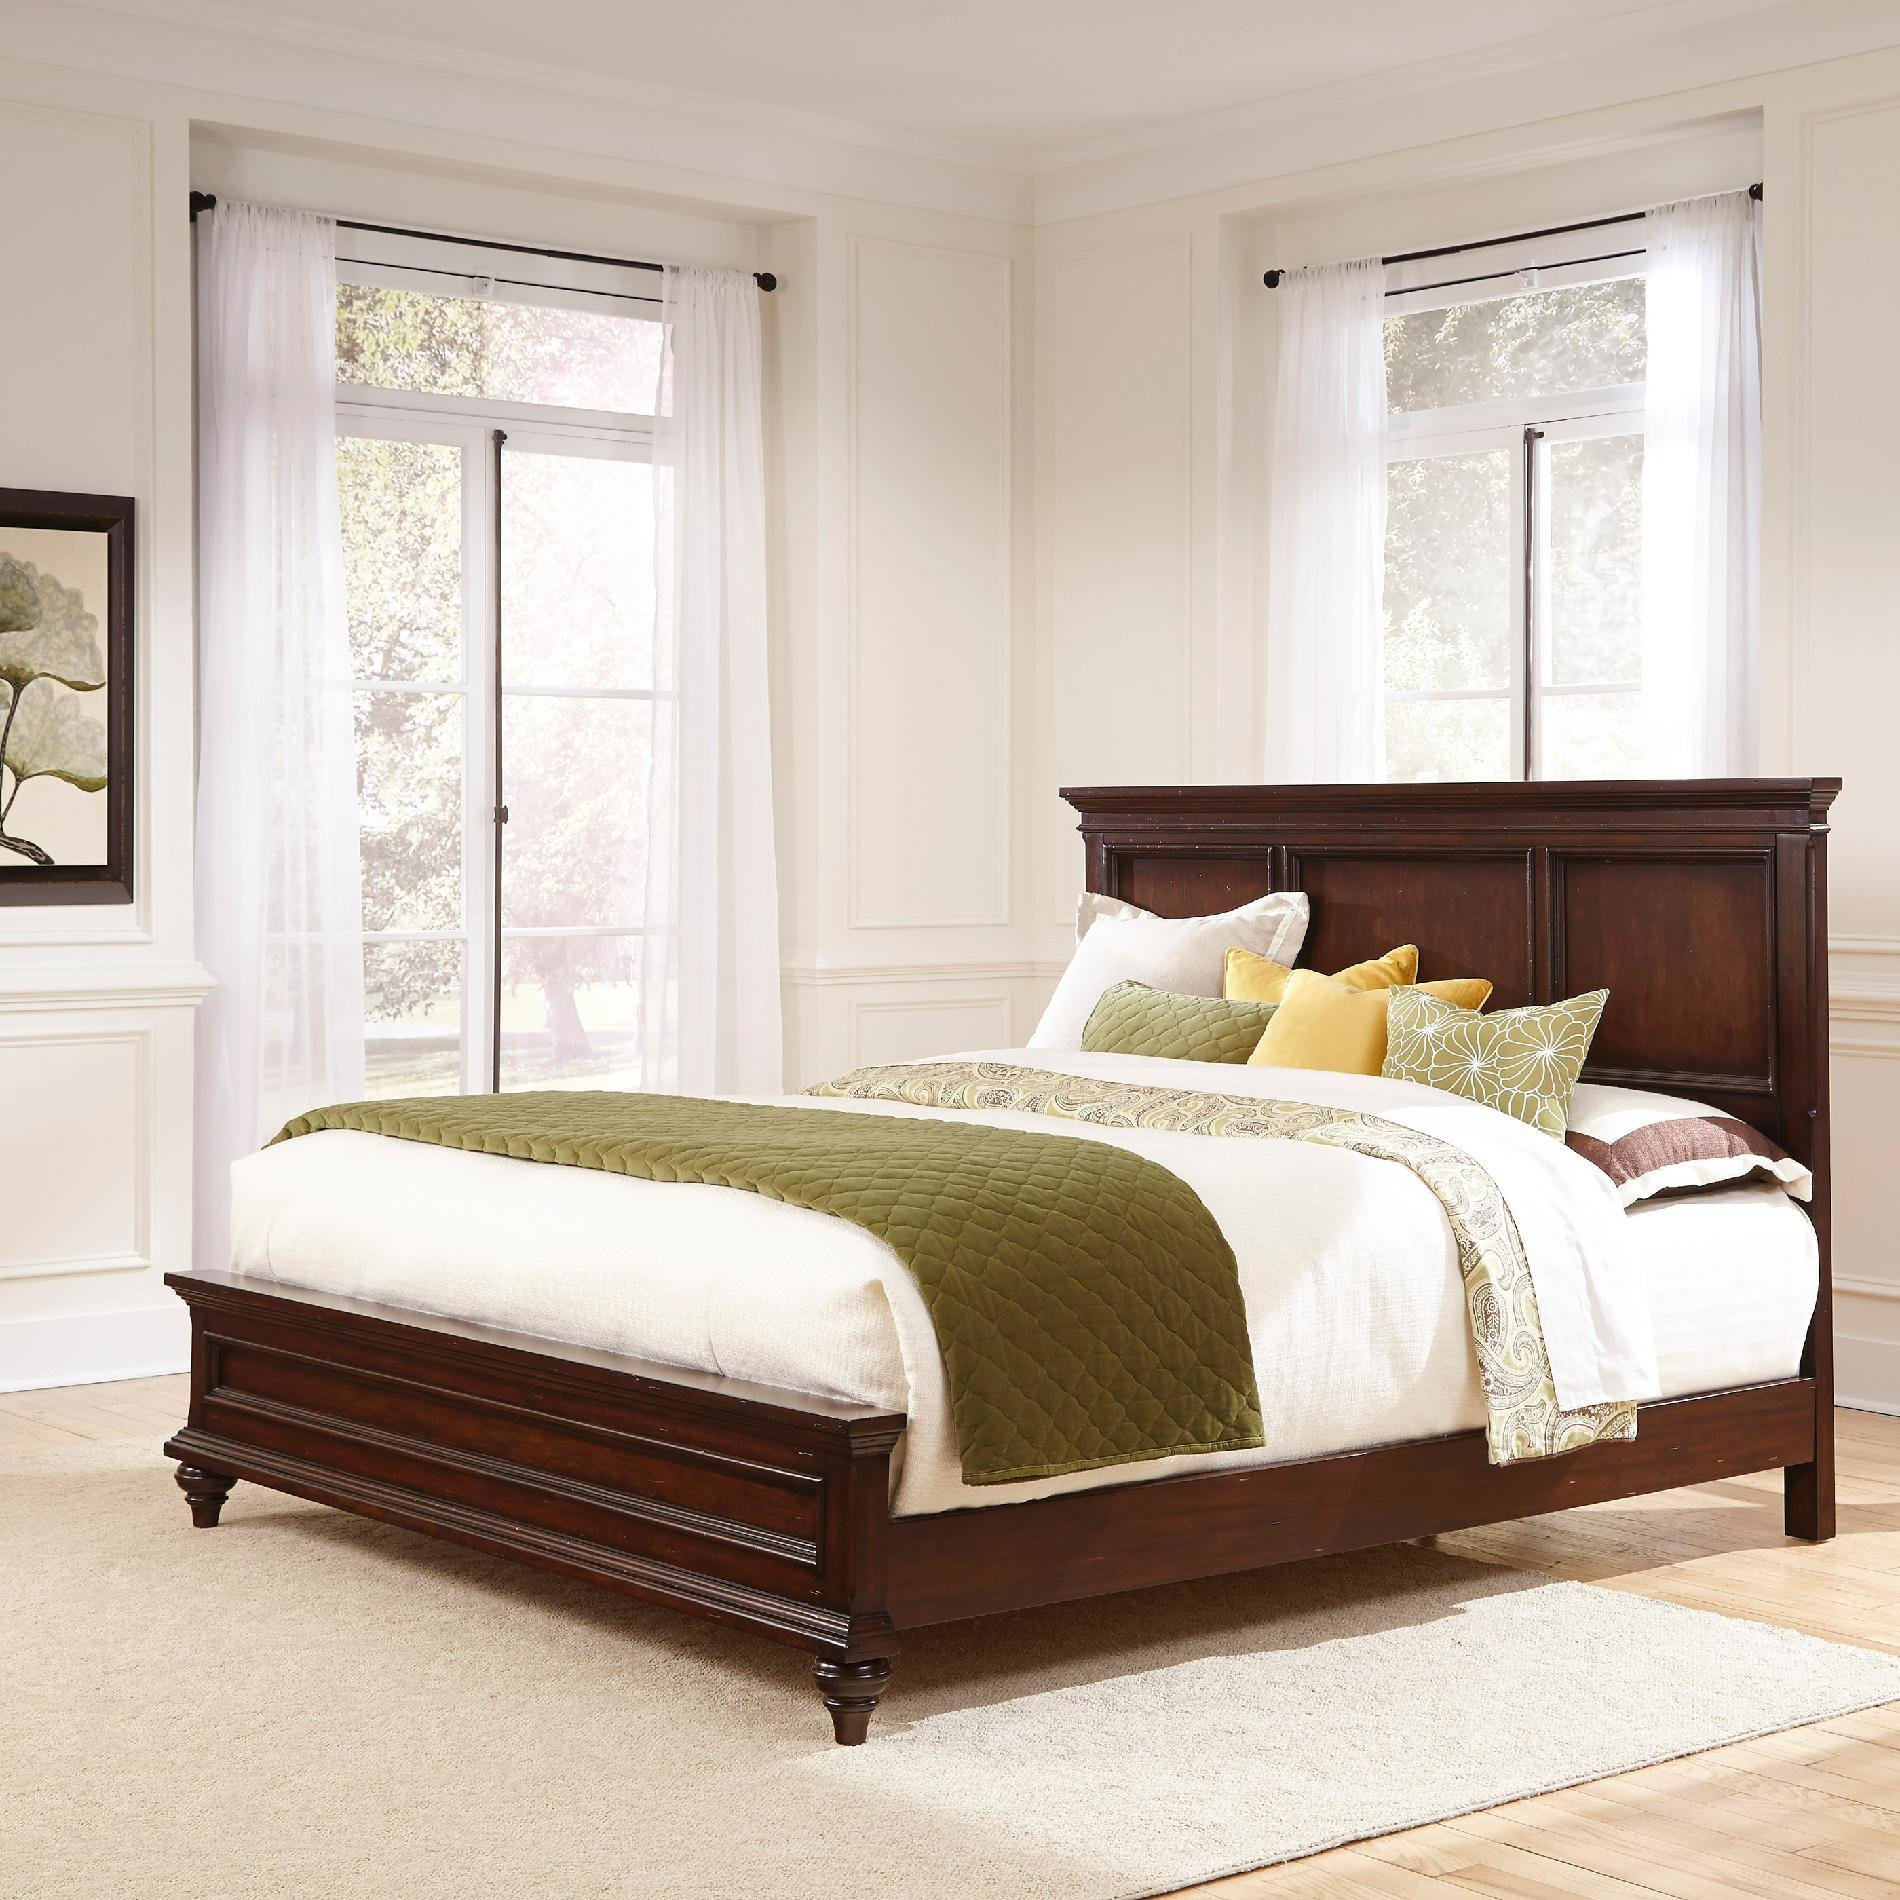 Best Beds Shop For Convenient Folding Beds And More At Sears With Pictures